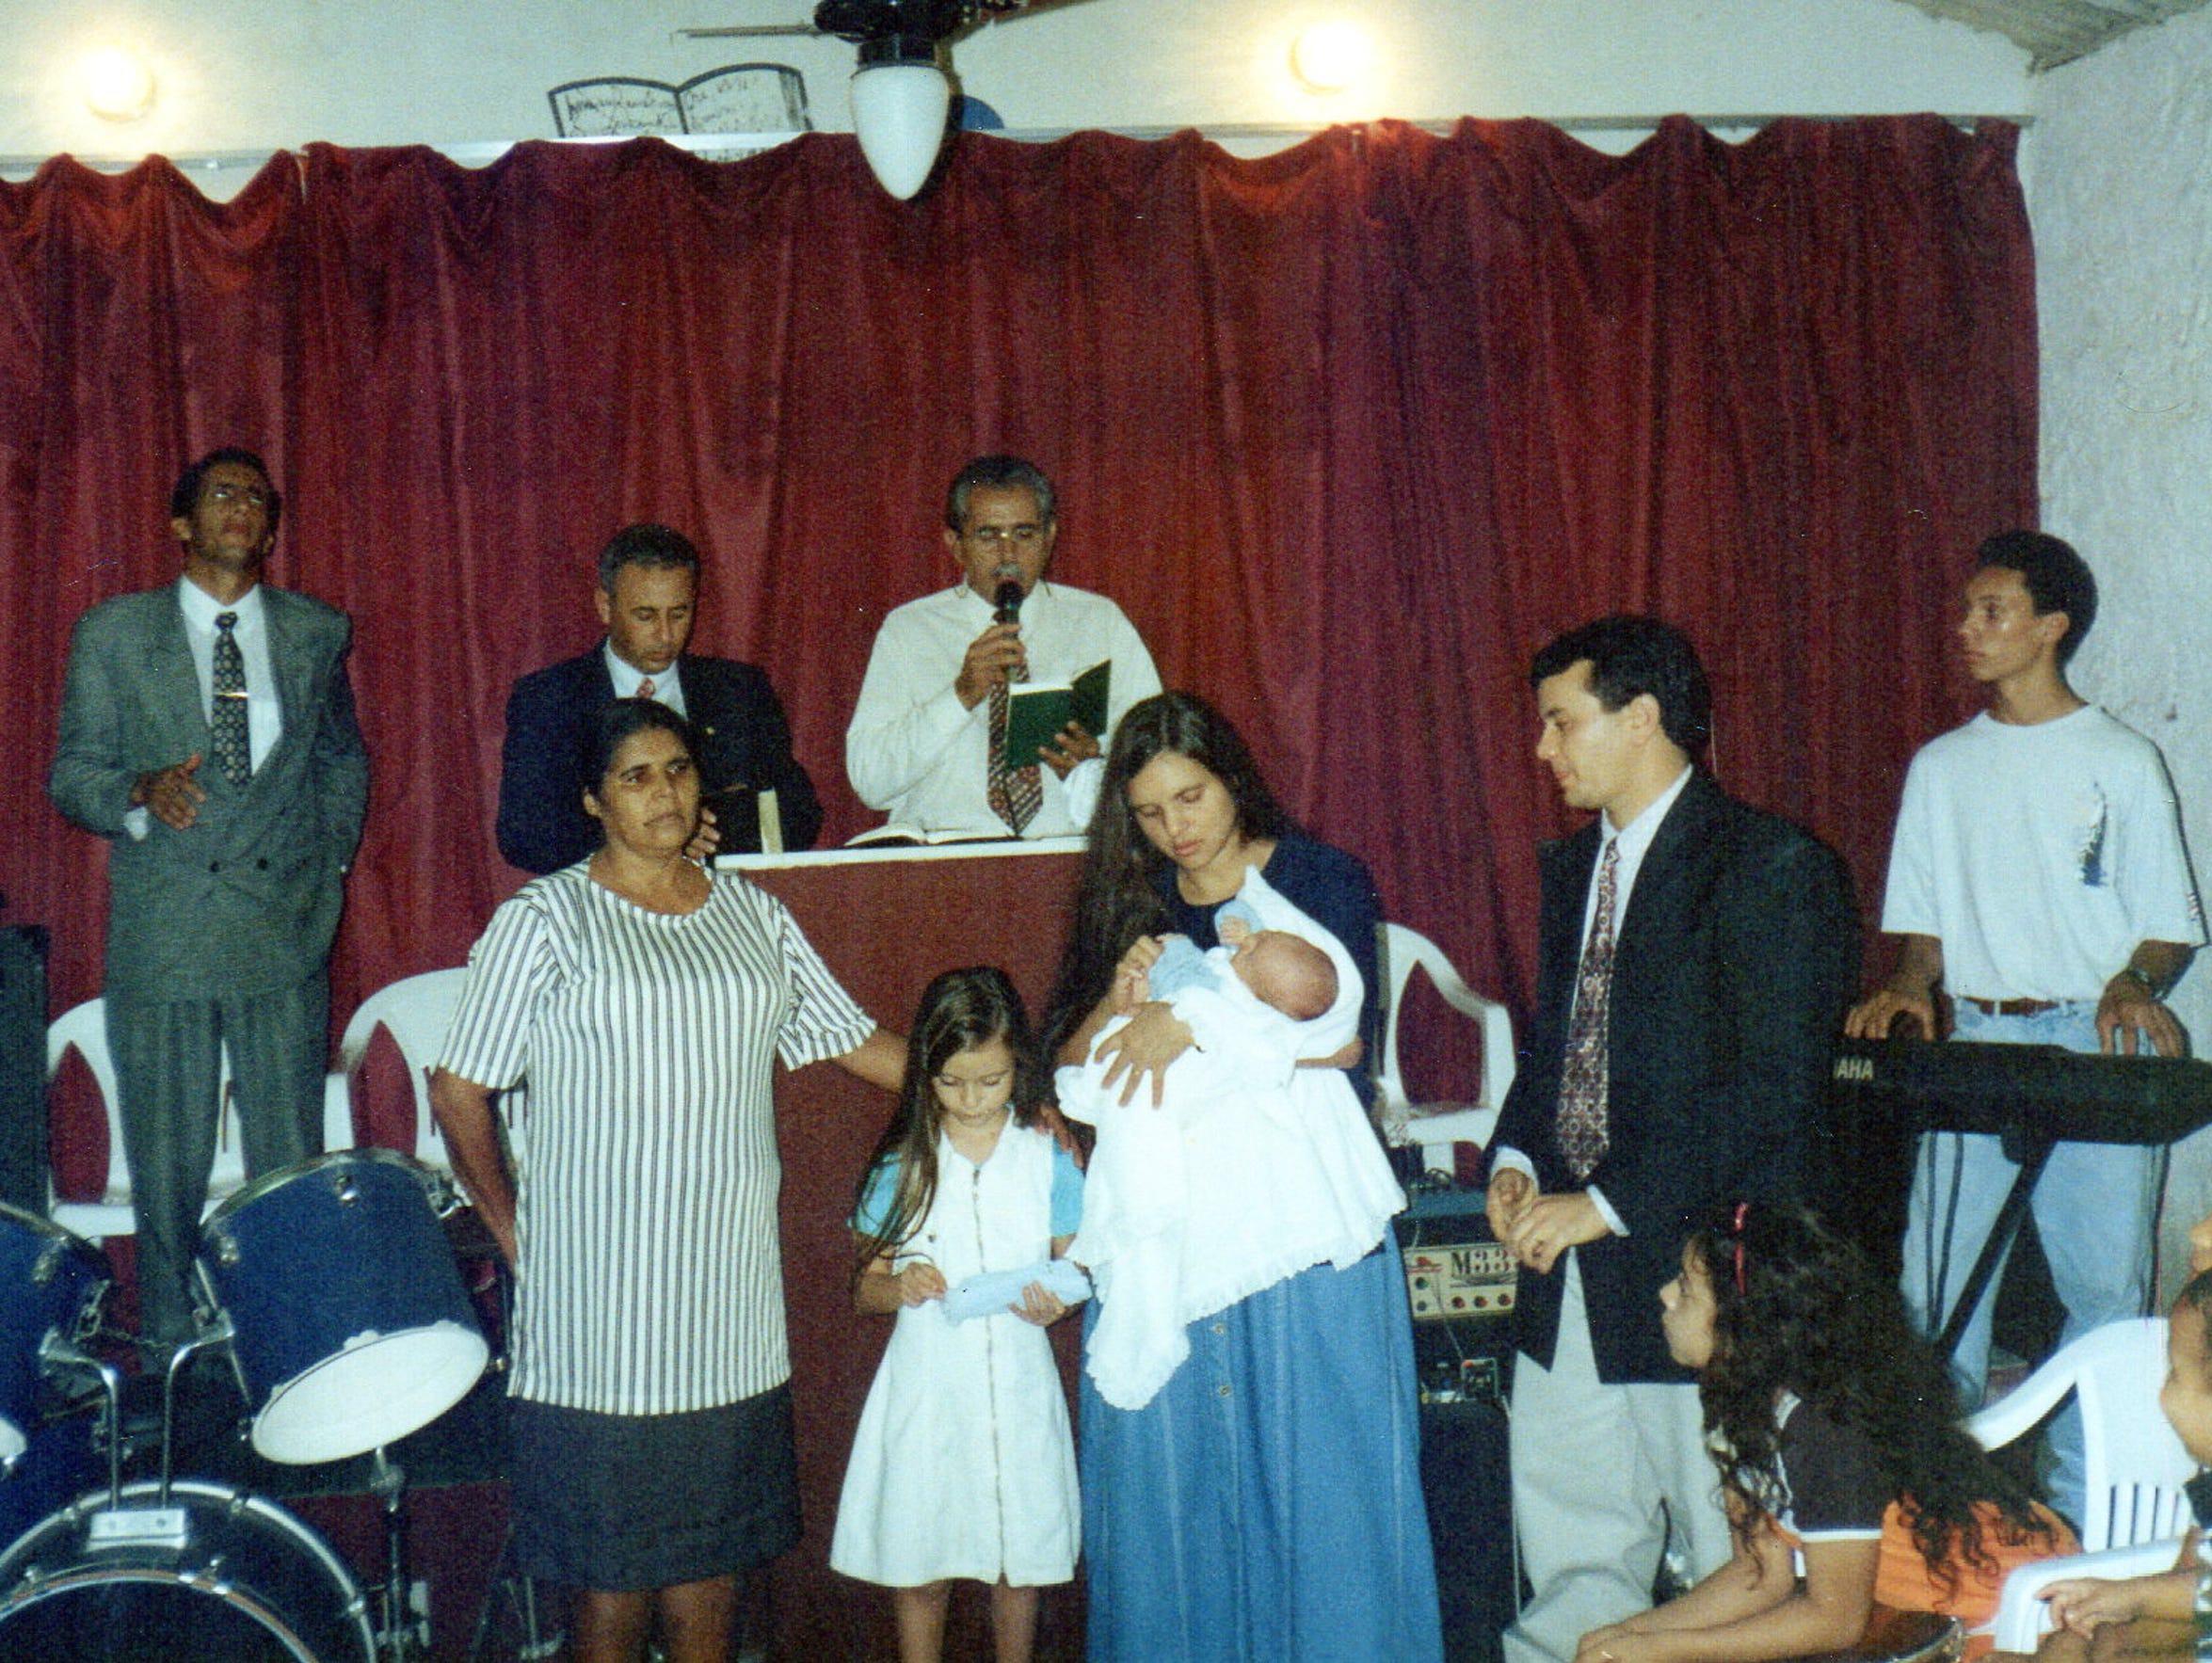 The Pereira family, and some friends, perform in a